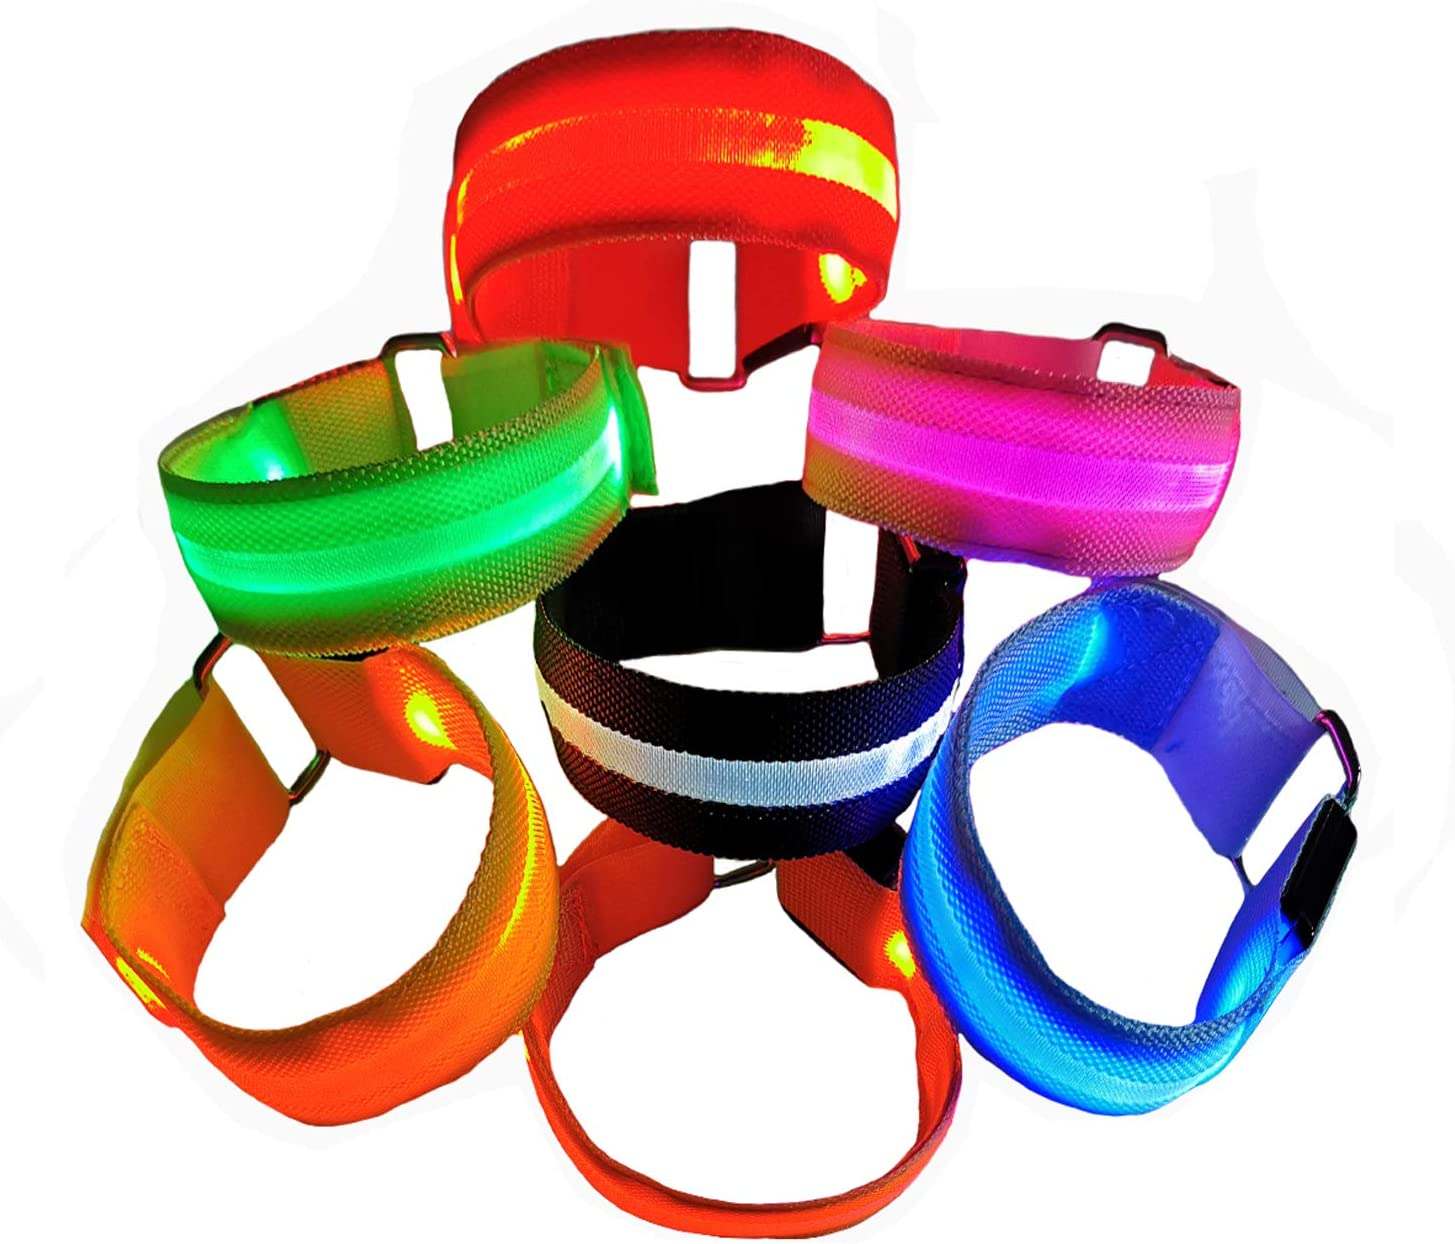 Hikers Glow in The Dark Led Slap Bracelets for Boys/& Girls Joggers Clan-x LED Armband for Running Light Up Sports Safety Event Wristband for Runners Cyclists